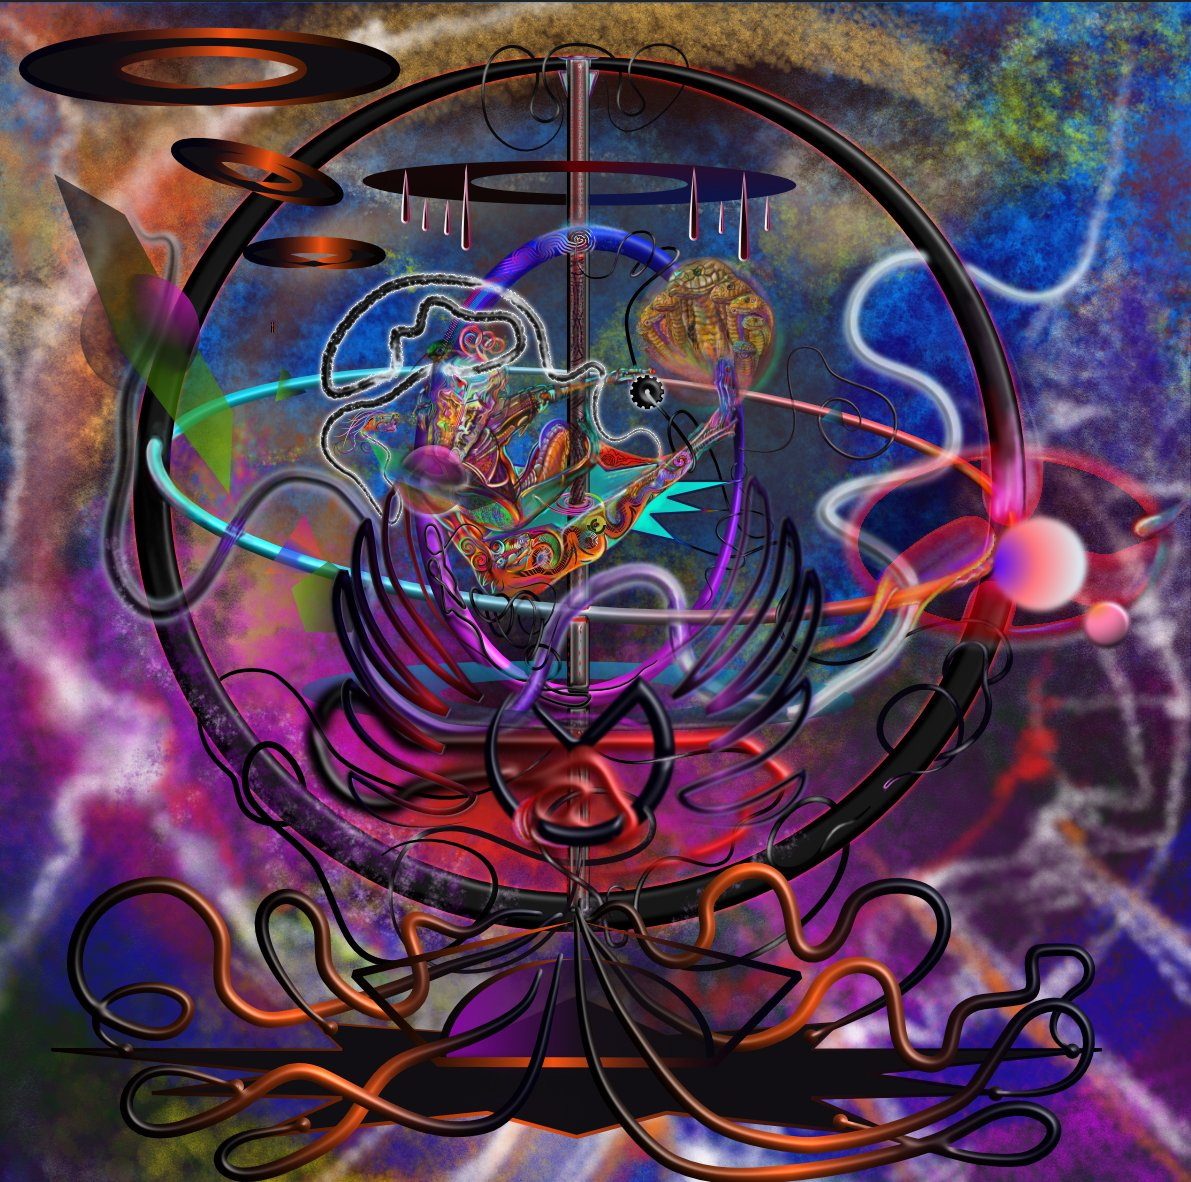 Octopus Acelerator to the Dark Matter Reciprocity infusion thruster by Doz 4 7 2020.jpg